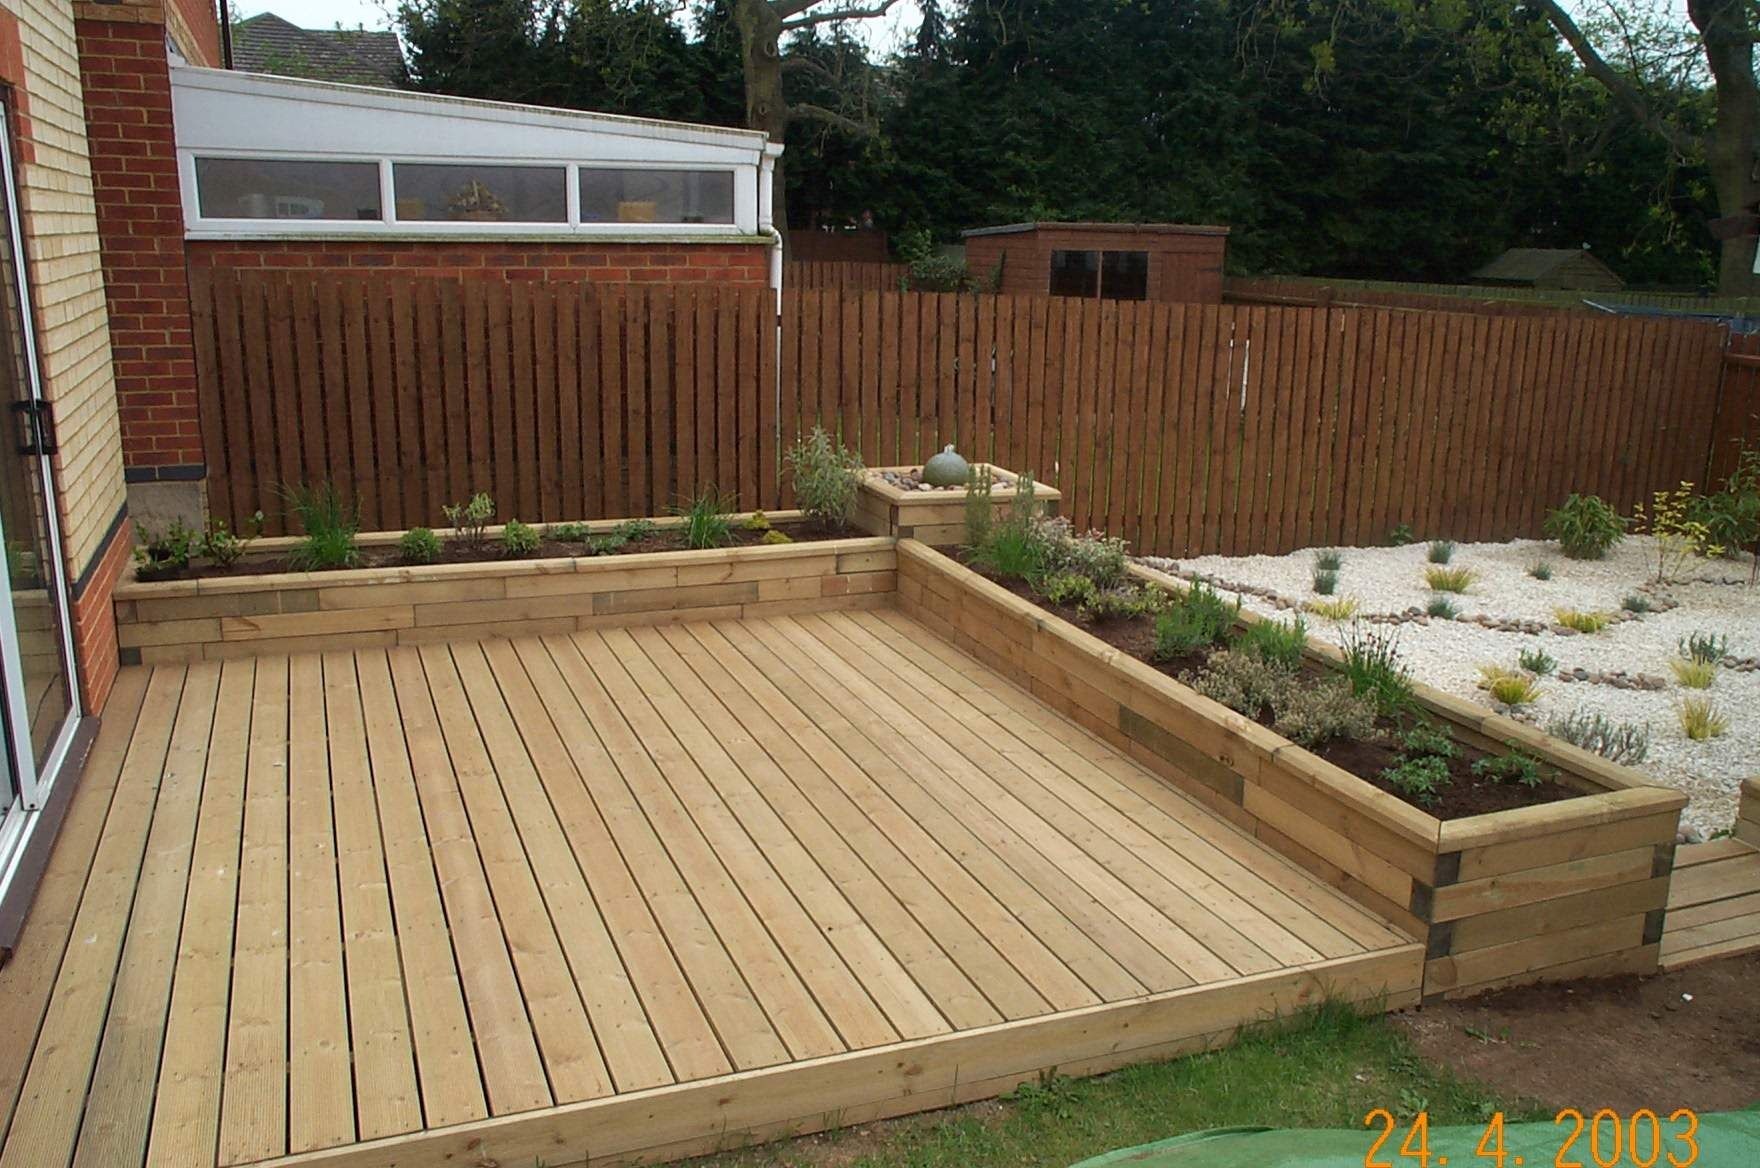 15 small deck ideas that will make your backyard beautiful